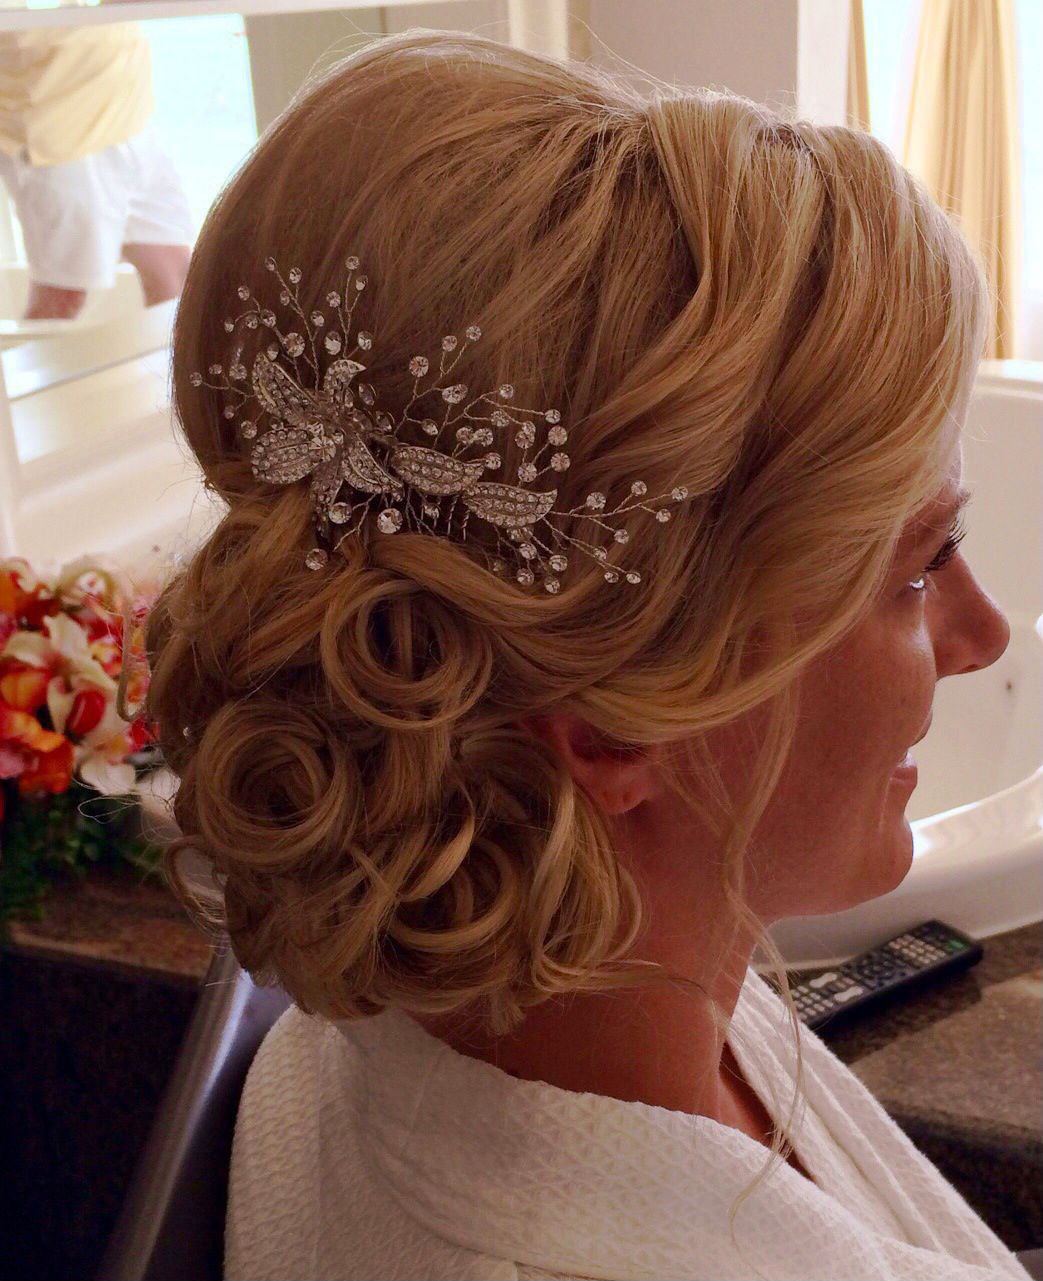 wedding hair elegant messy side bun updo | my destination